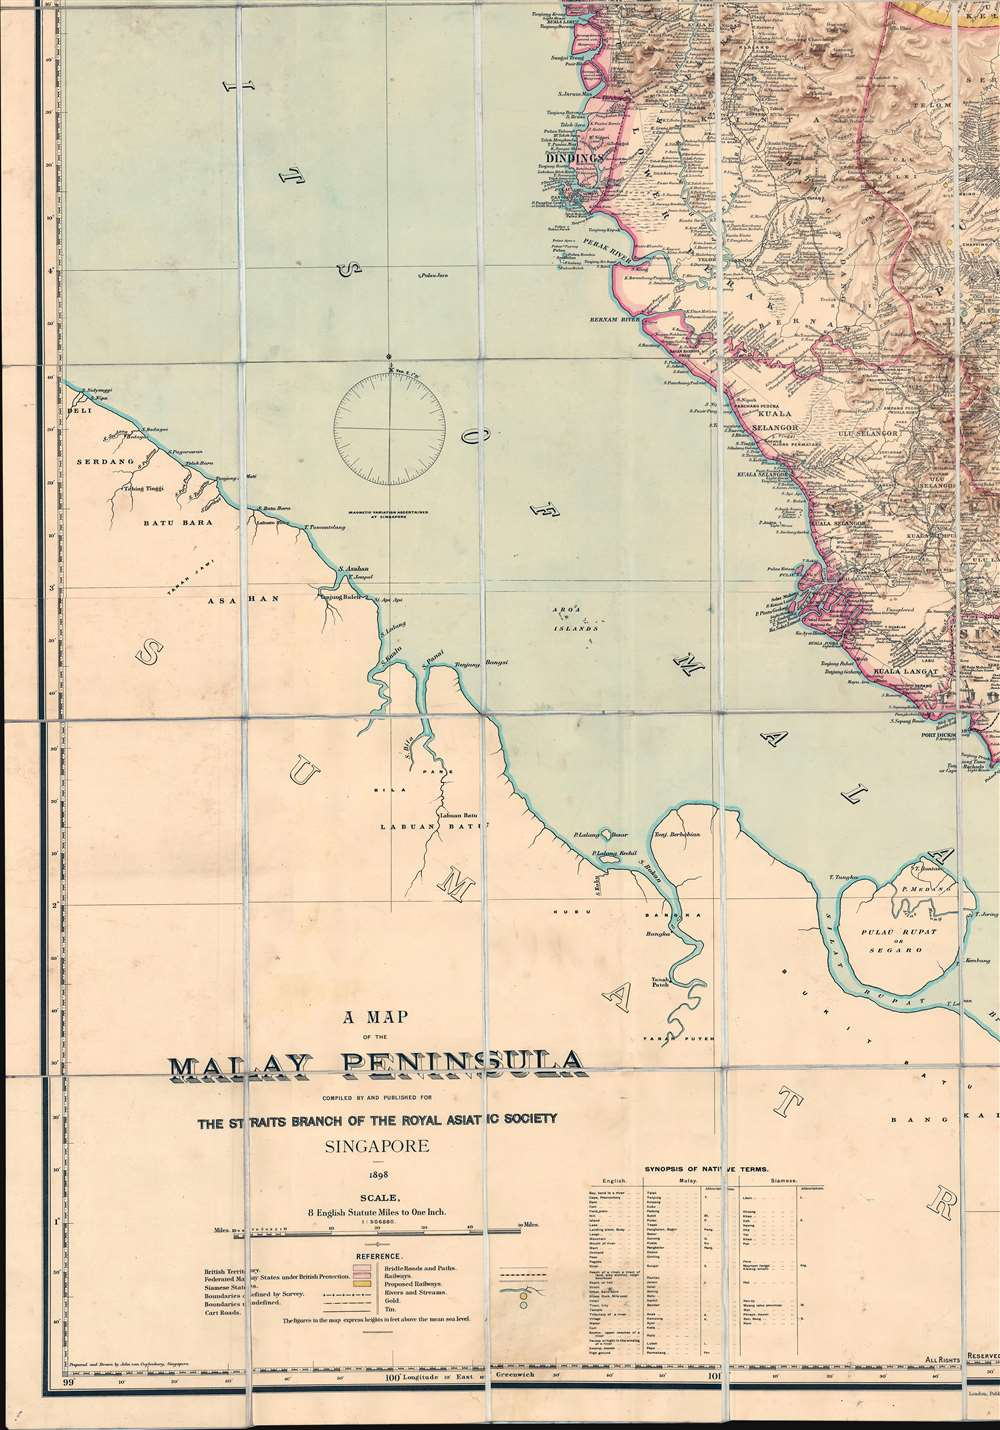 A Map of the Malay Peninsula Compiled by and Published for The Straits Branch of the Royal Asiatic Society Singapore. - Alternate View 4